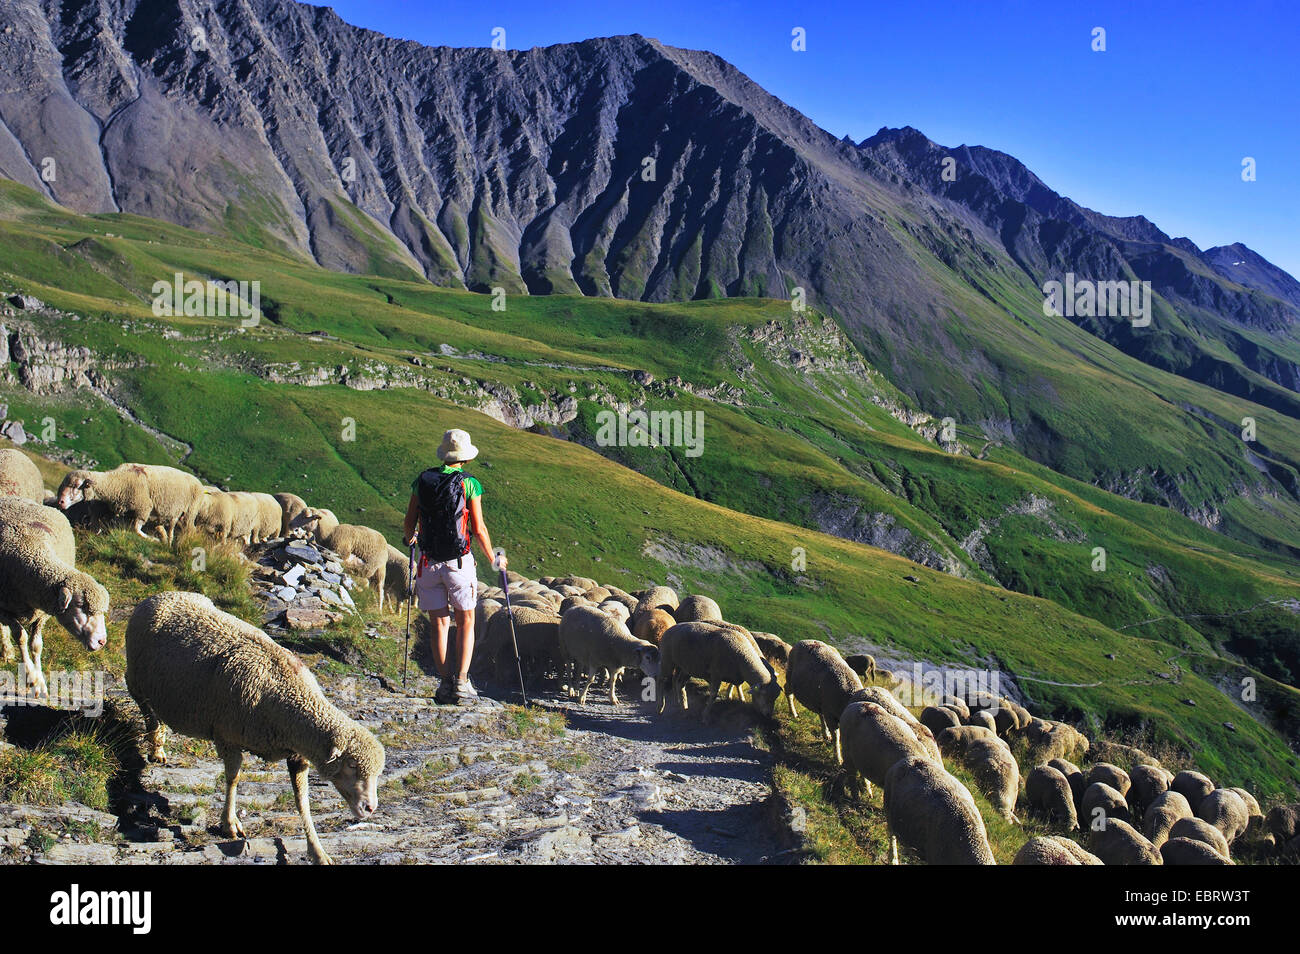 domestic sheep (Ovis ammon f. aries), hiker in a flock of sheep on a mountain path near the Aiguille des Glaciers Stock Photo